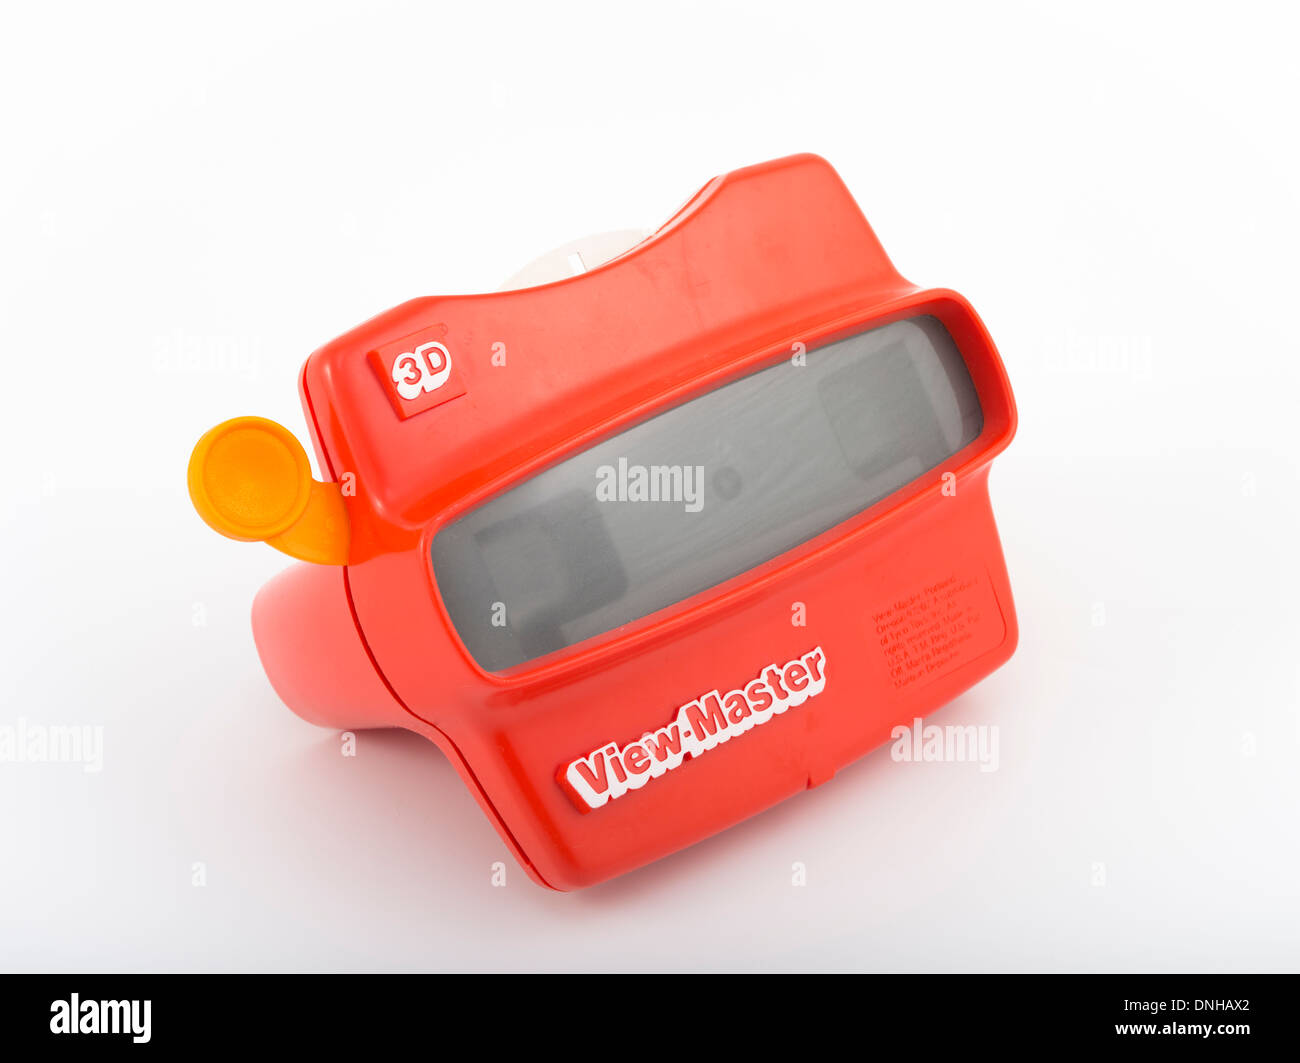 View-Master stereoscopic 3-D viewer - Stock Image